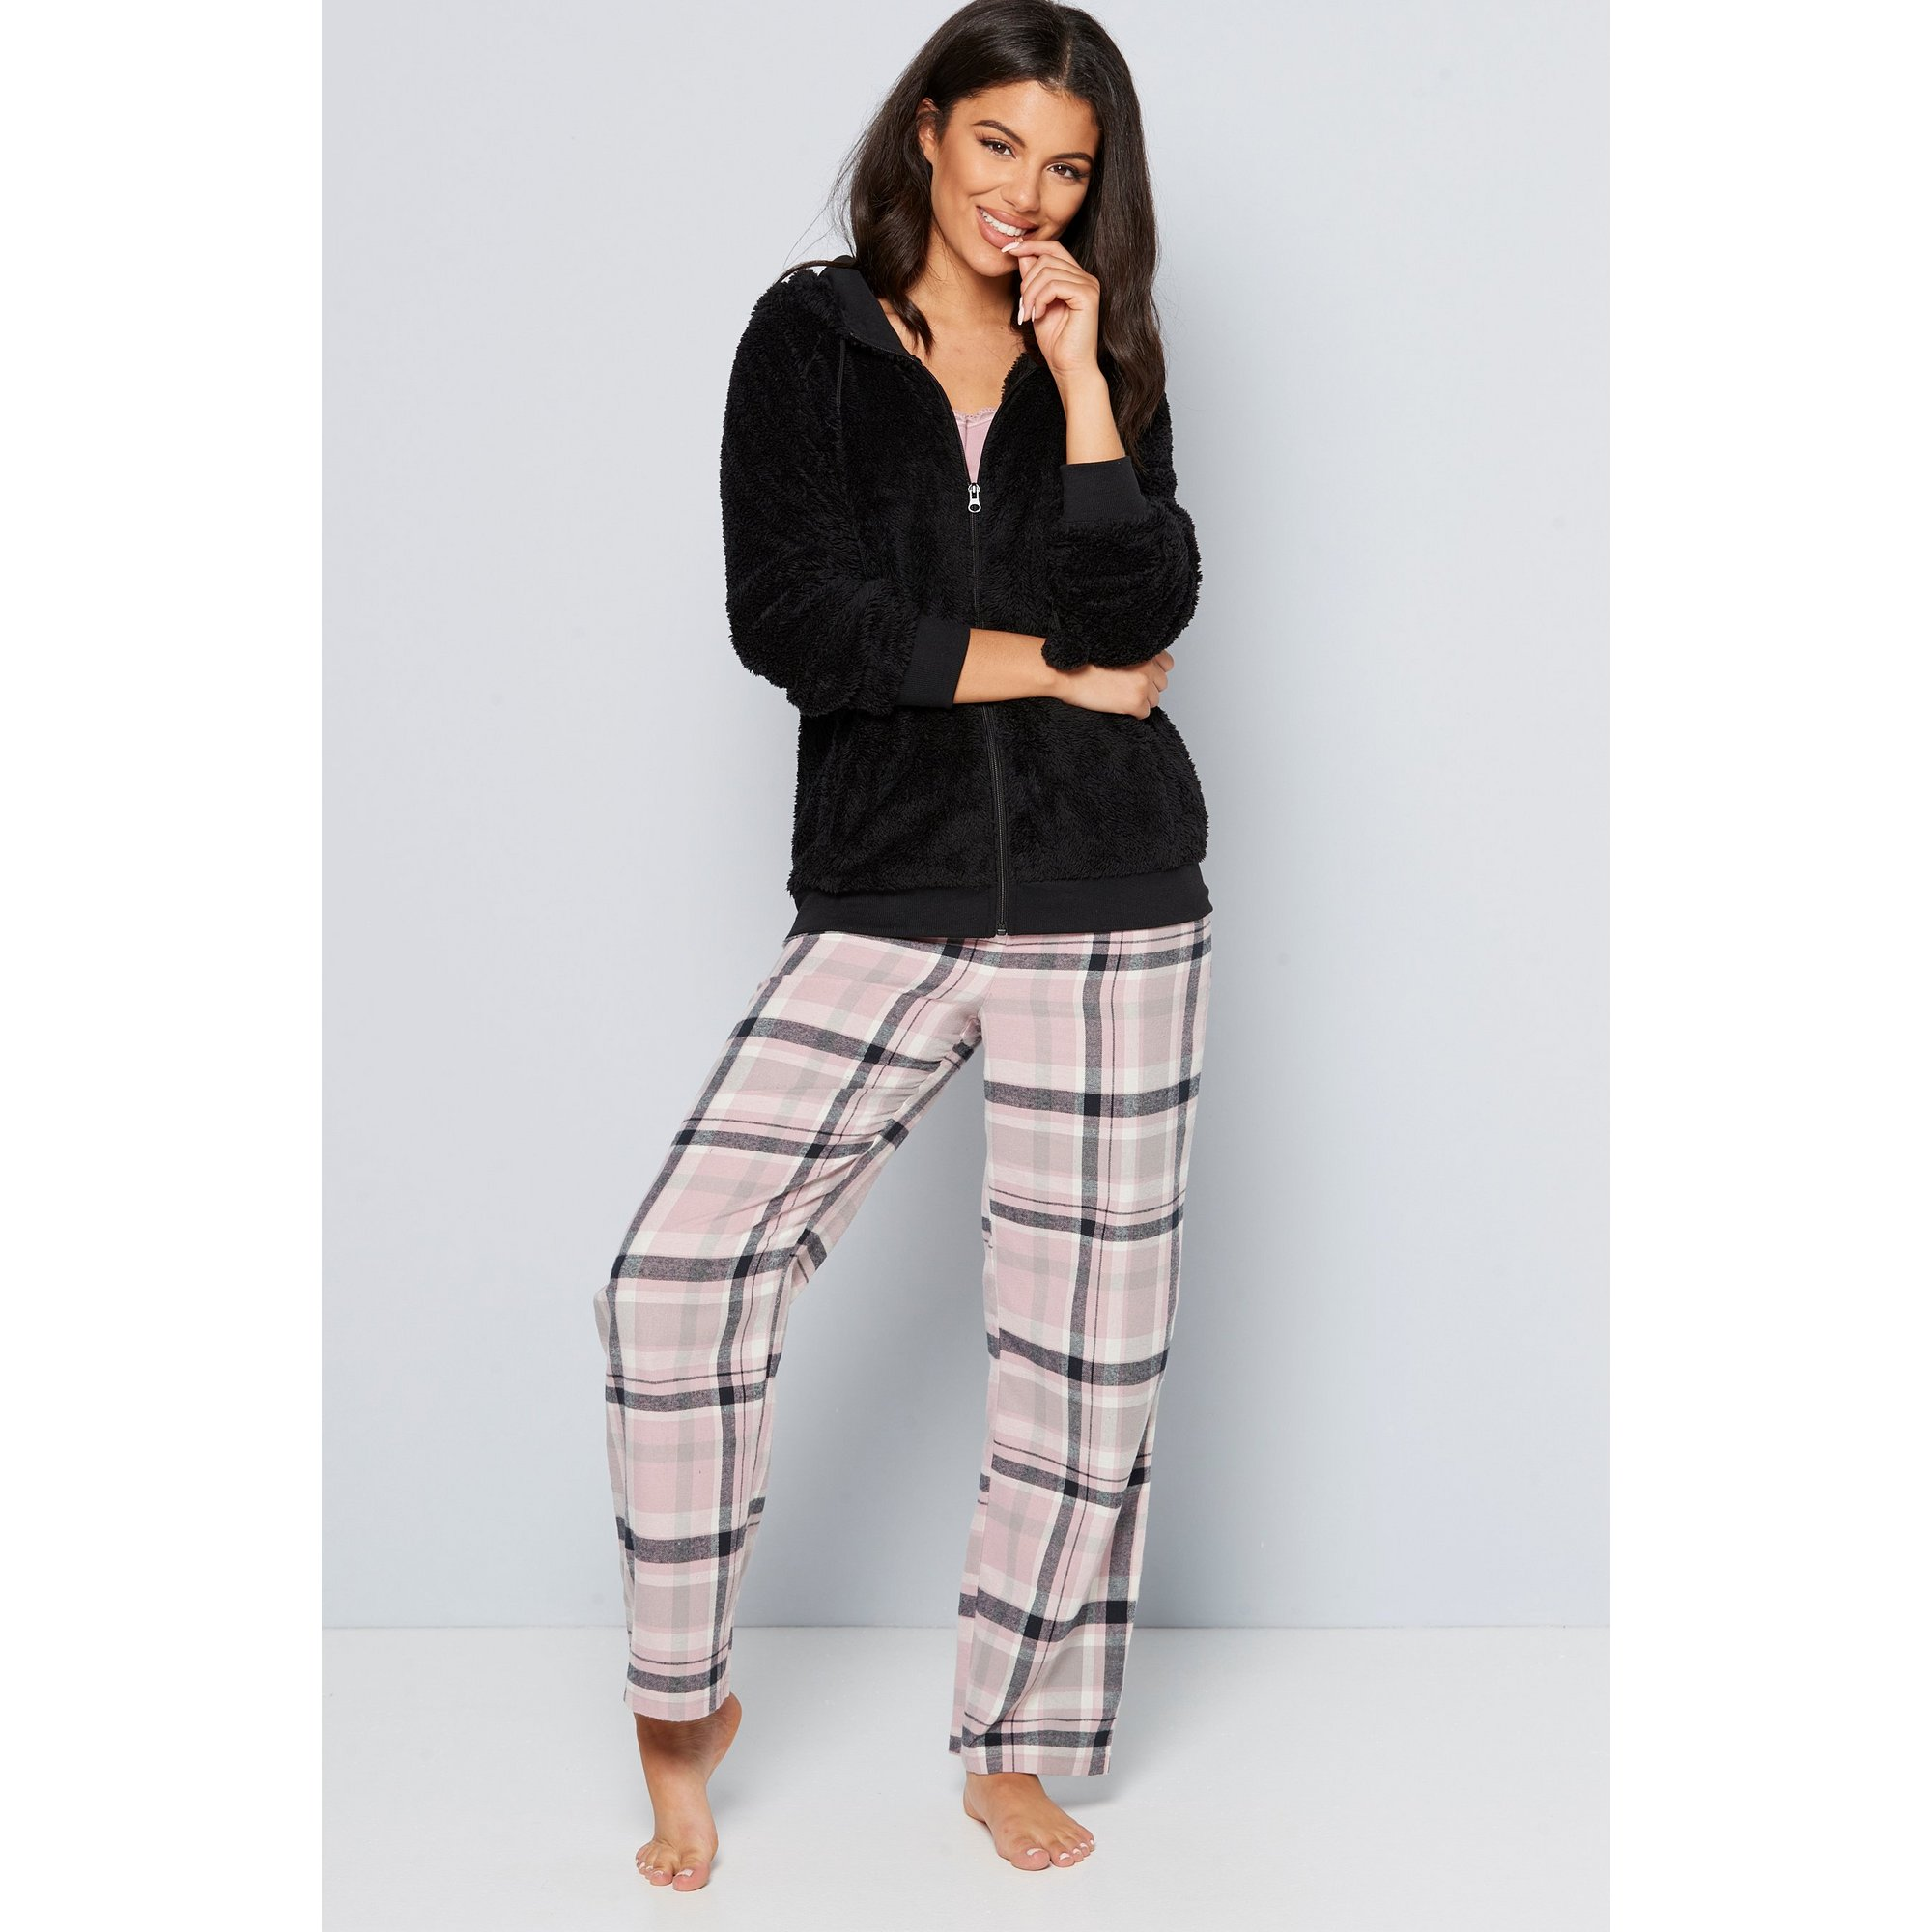 Image of Black and Pink Check Hooded Fleece 3-Piece Set